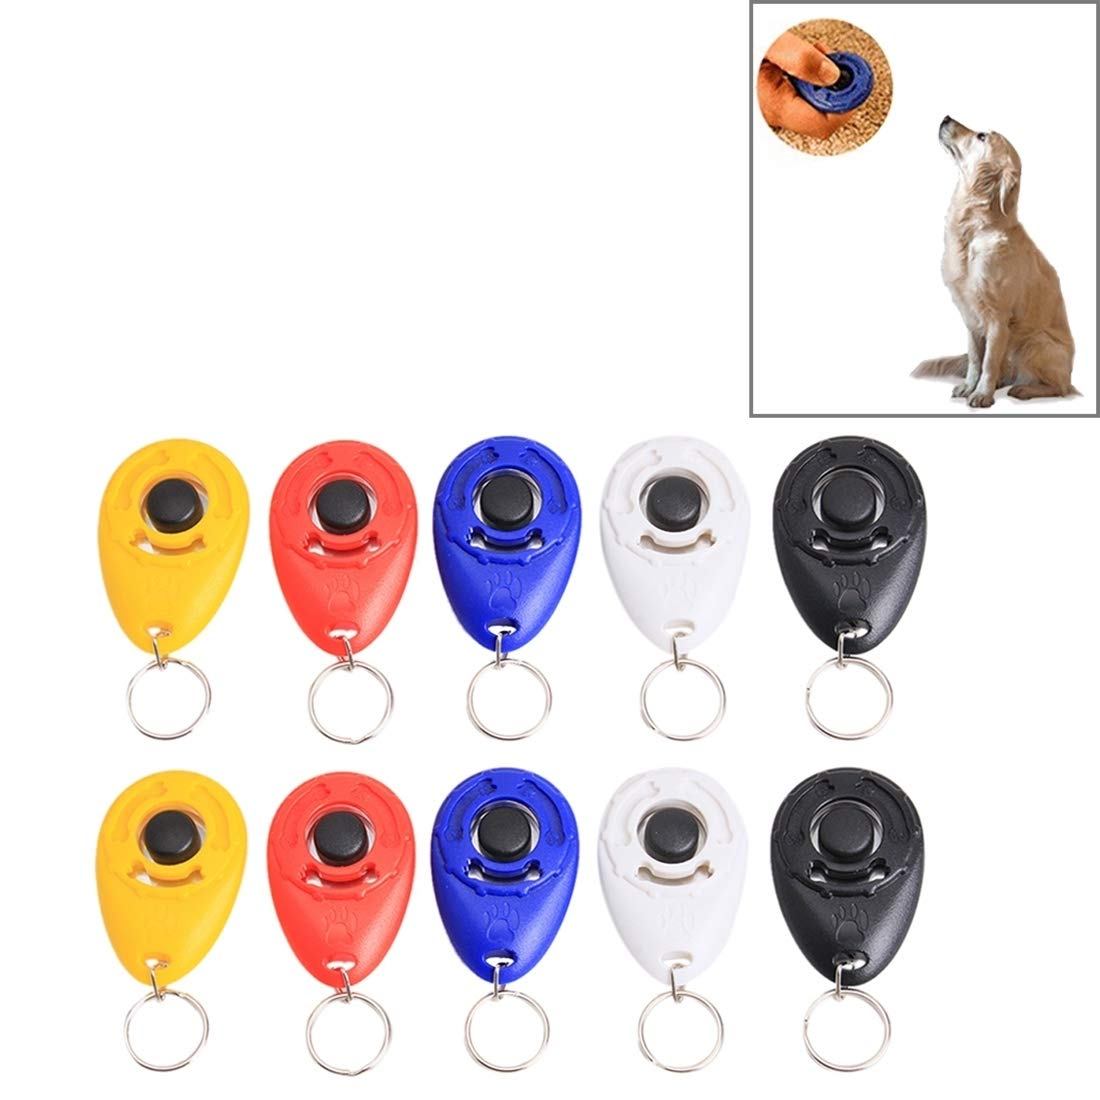 VAXT Random Gloss Delivery, Manoeuver 10 PCS Pet Training Clicker Button Water Droplets Style Dog Training Whistle with Key Chain